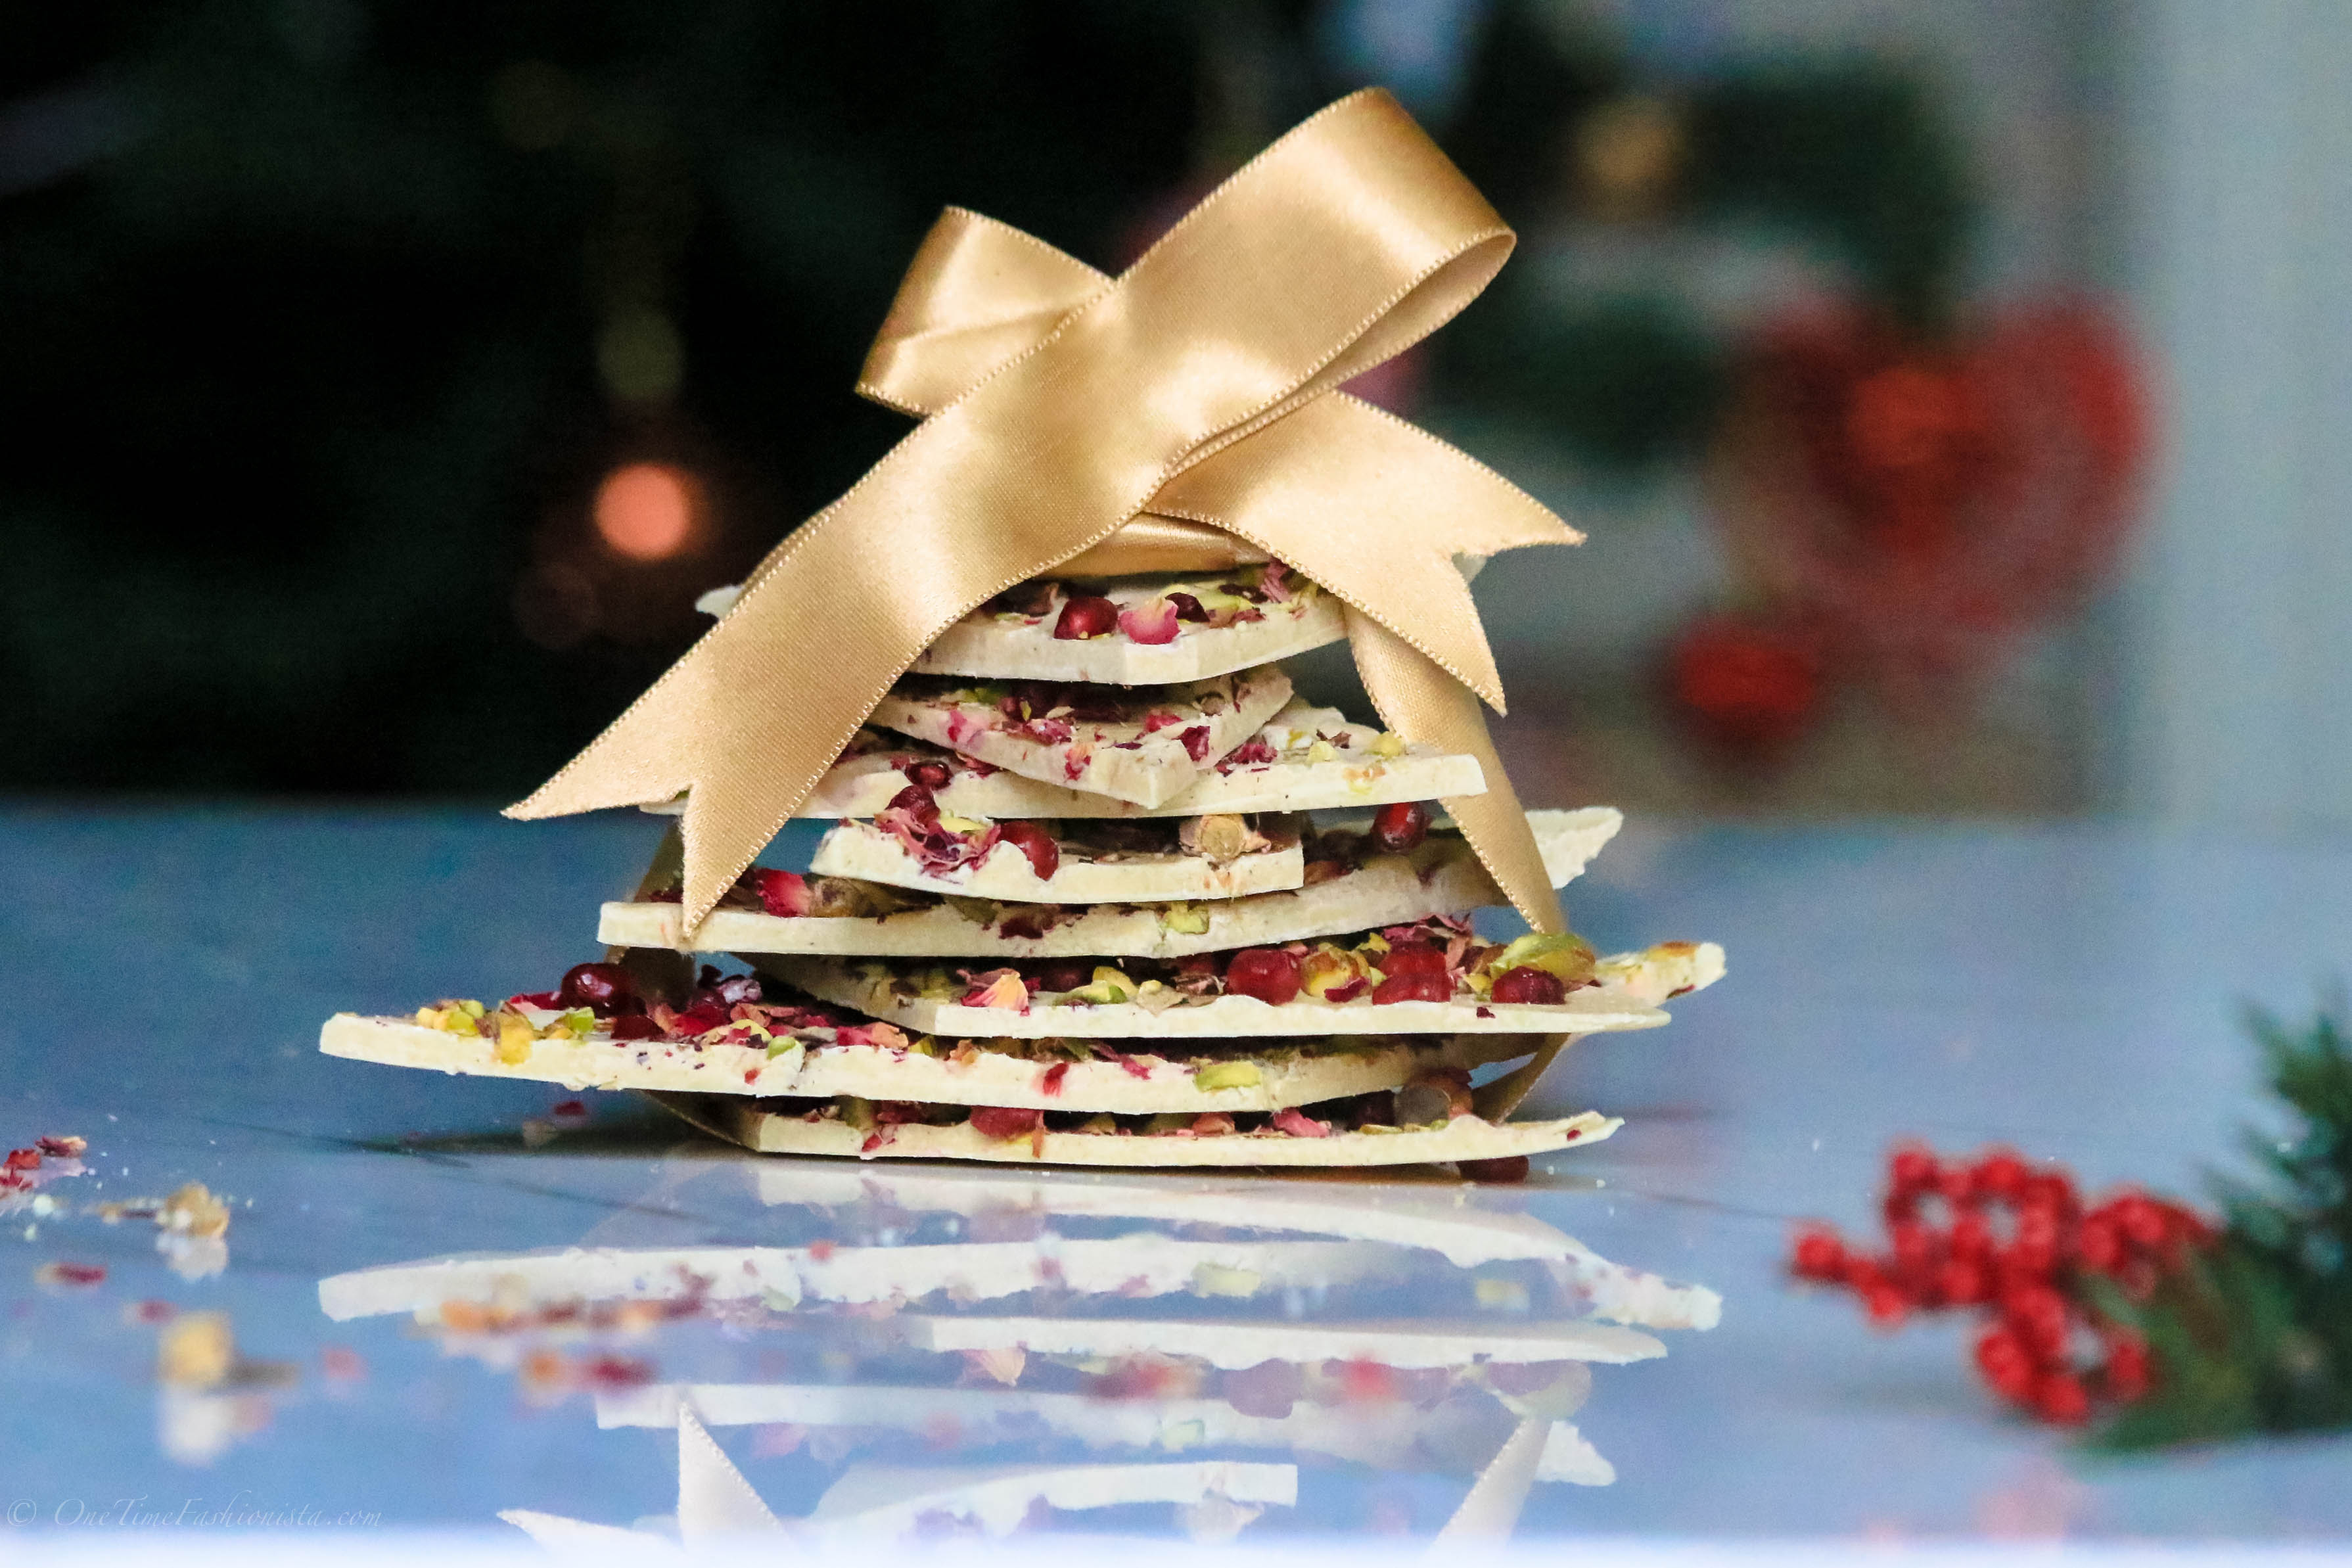 An Edible Christmas Present: White Chocolate Bark